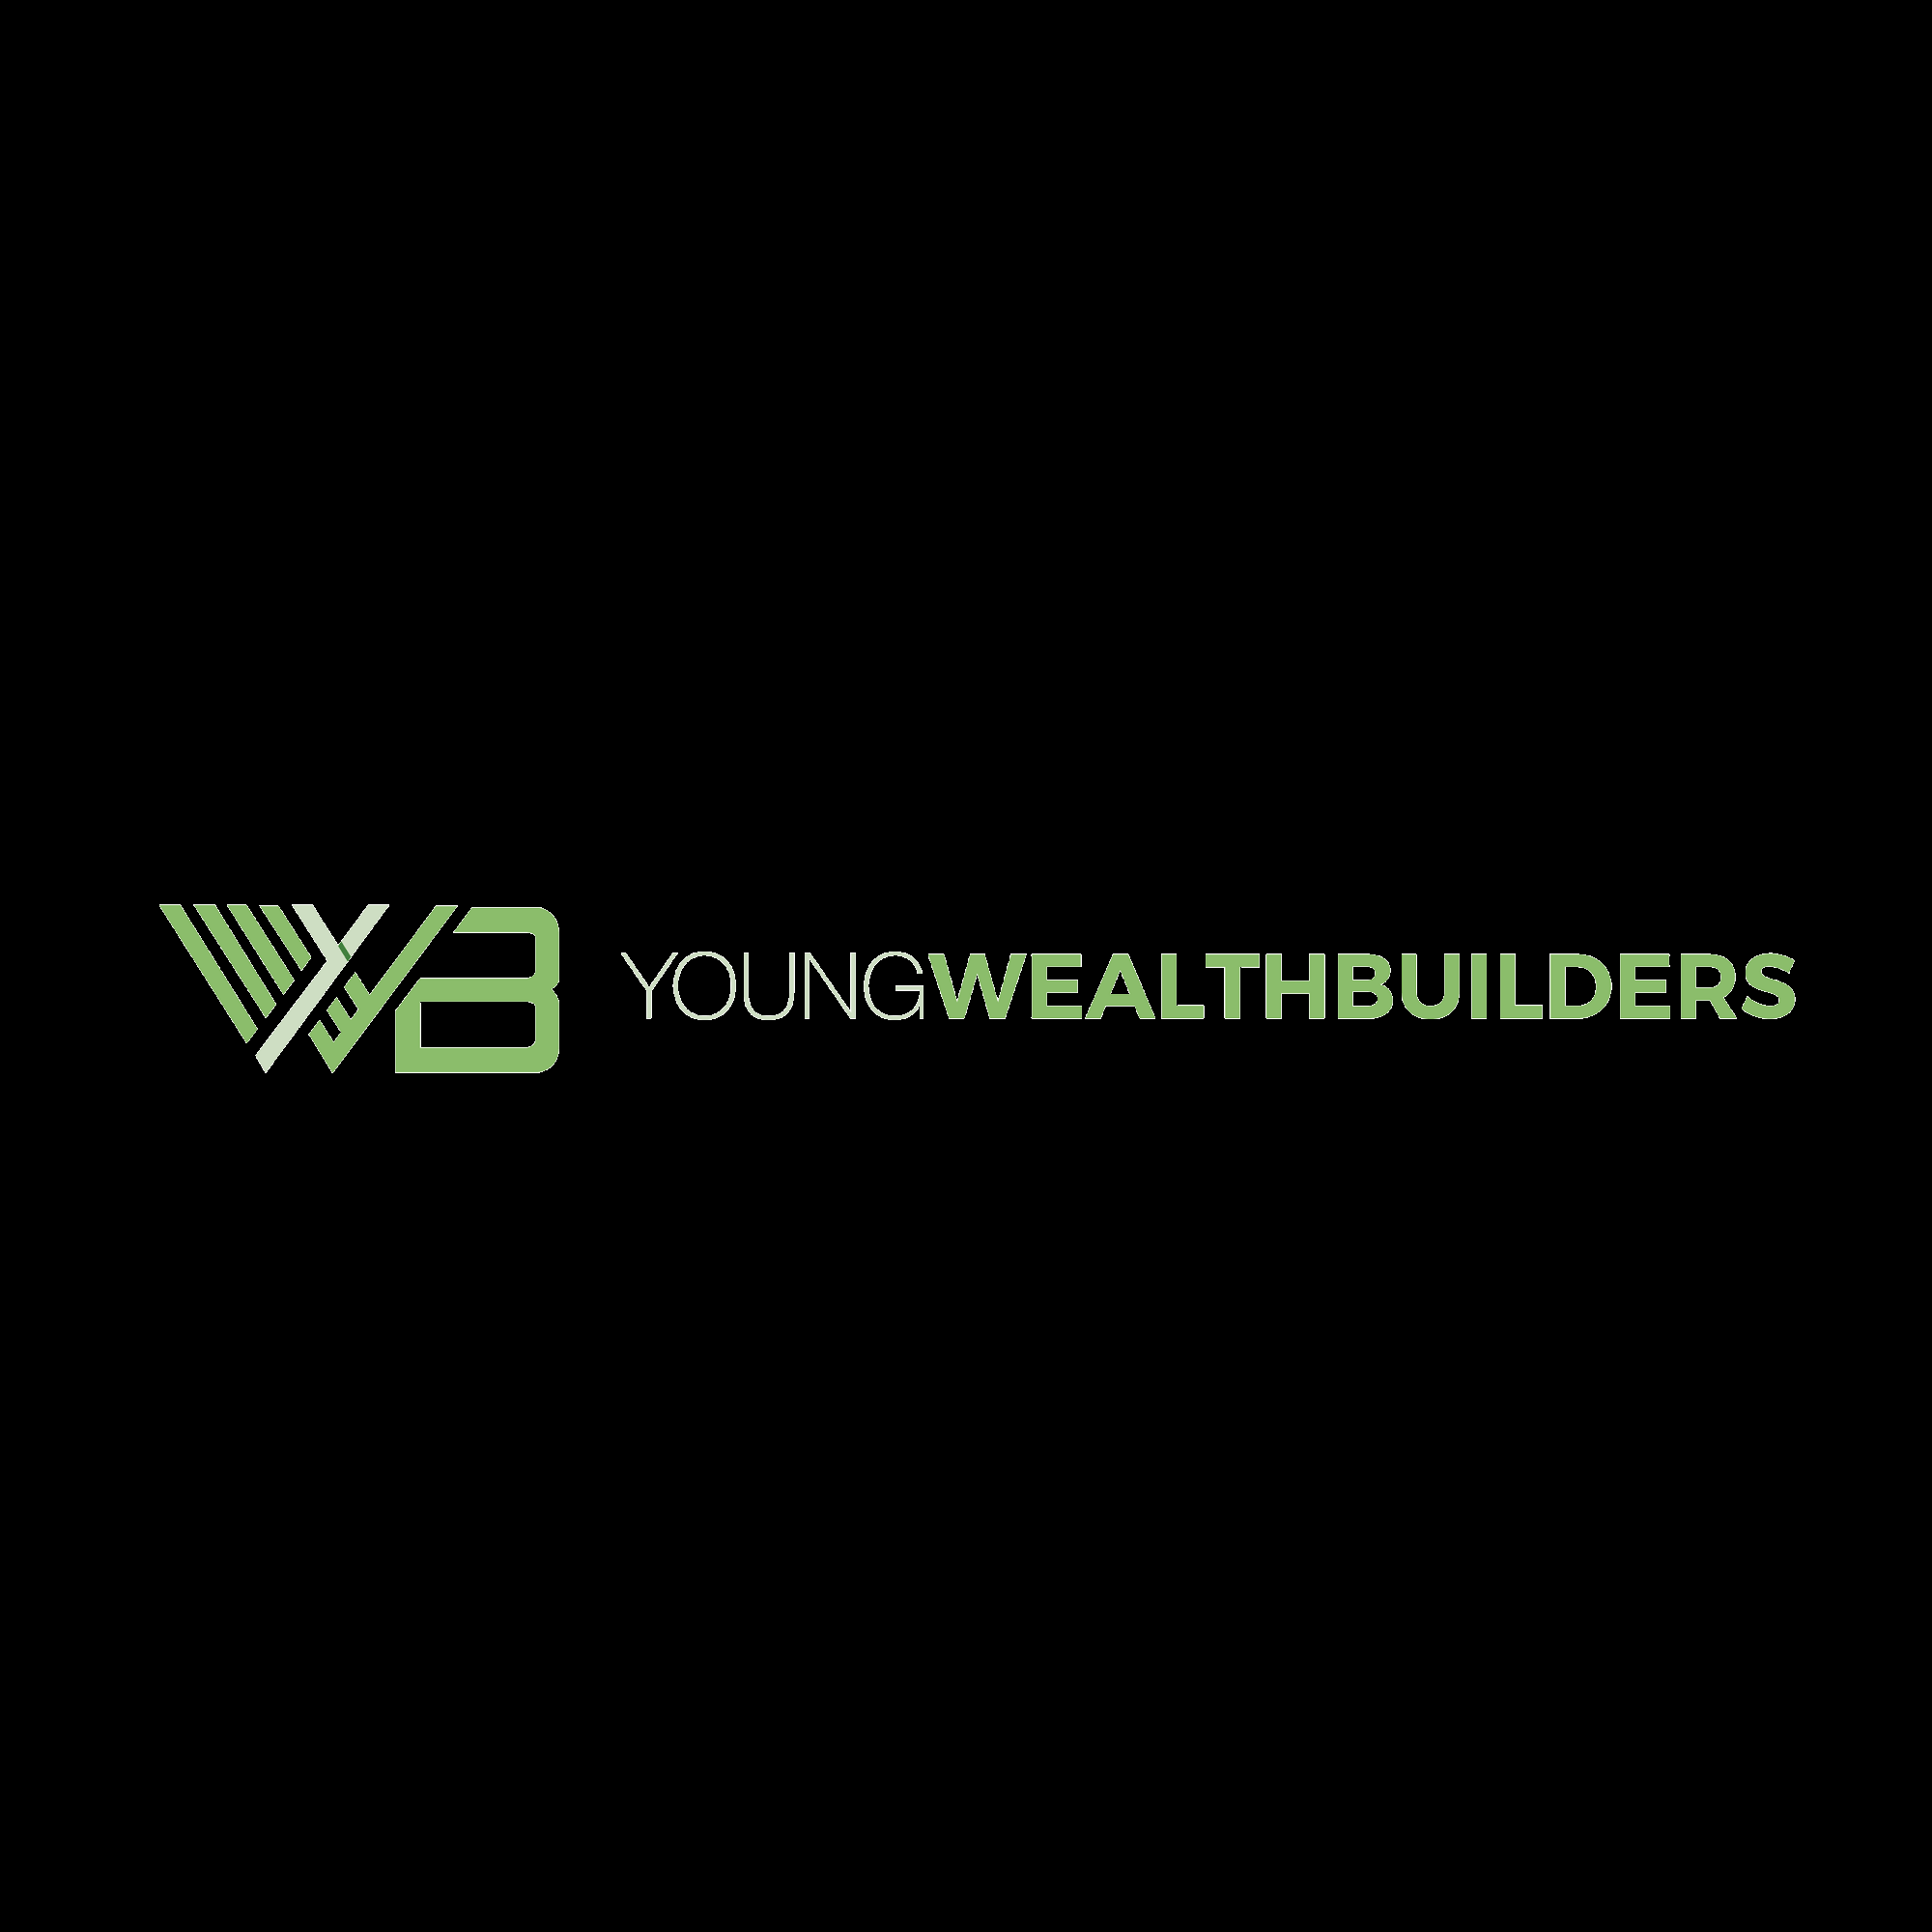 Young Wealth Builders